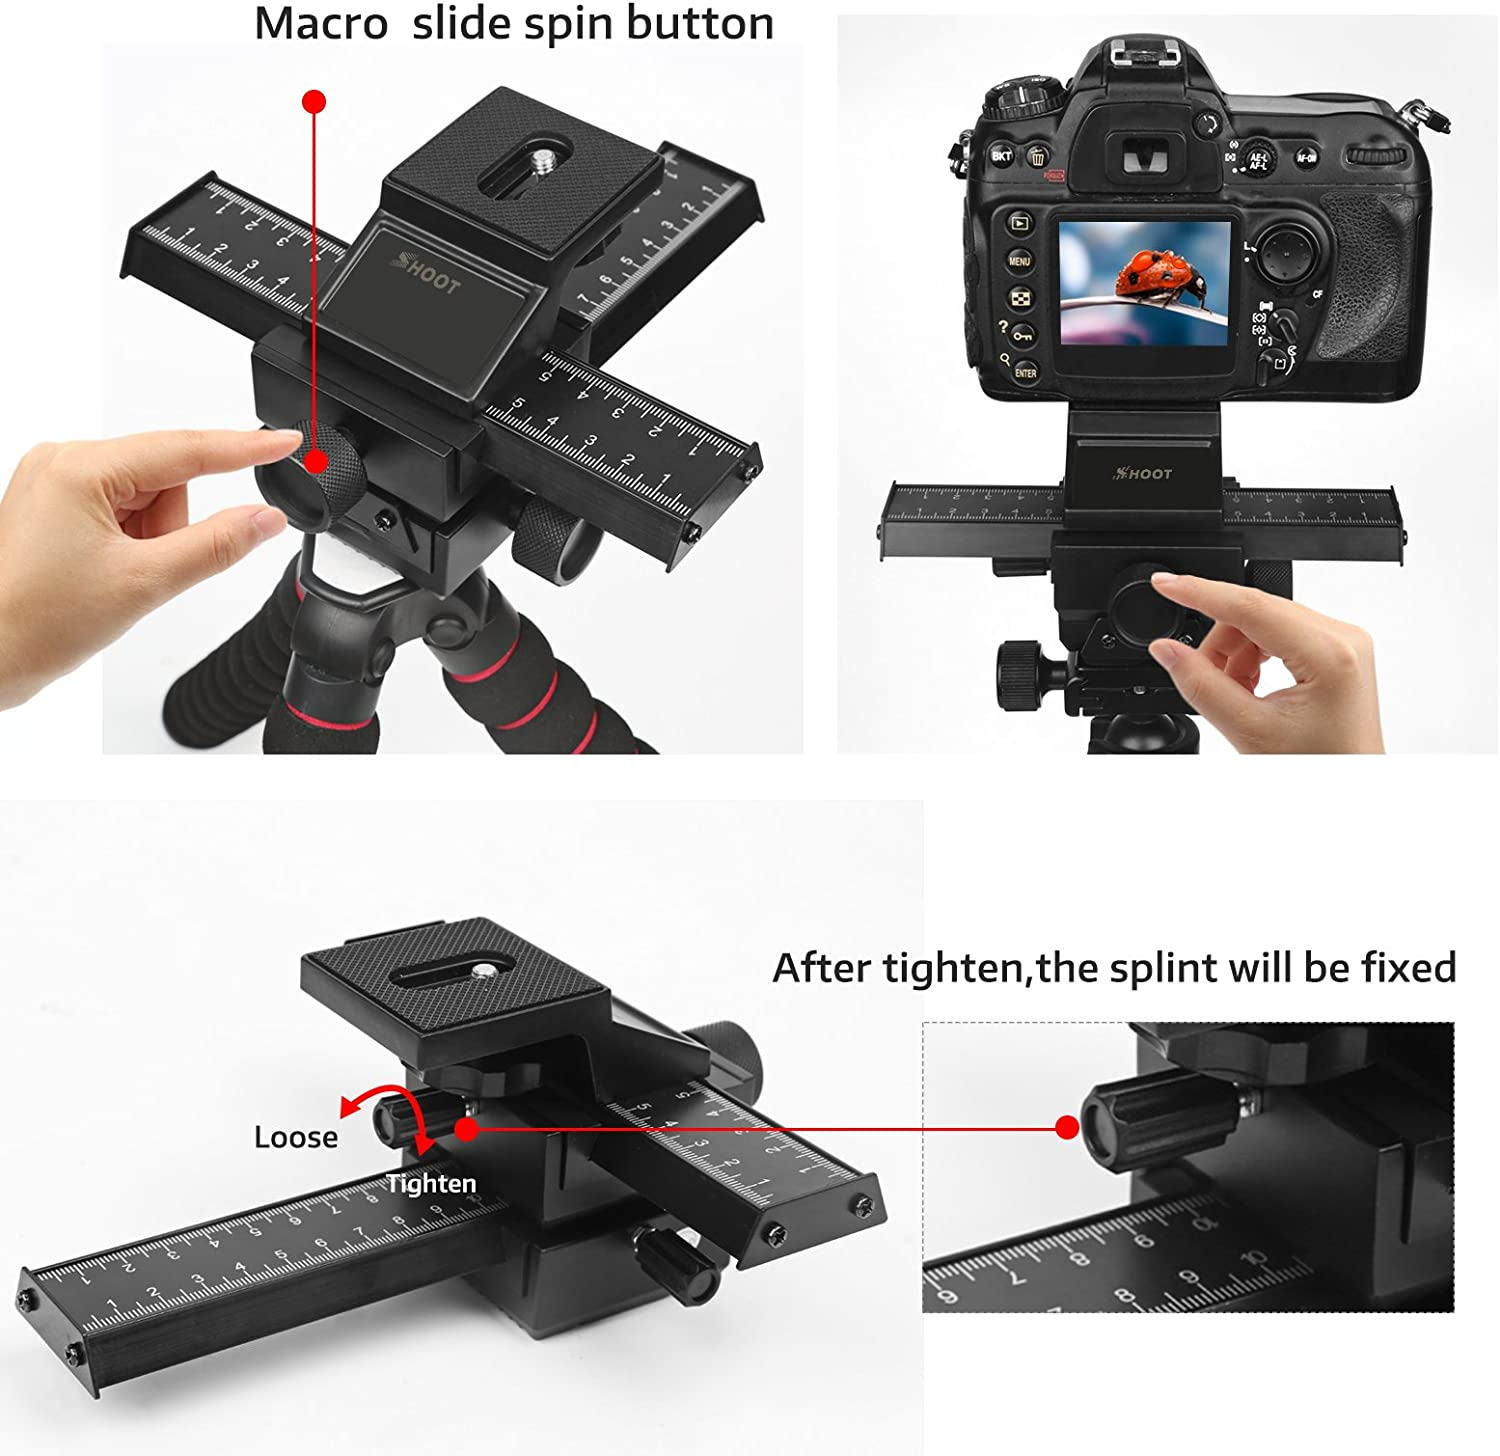 D/&F 4 Way Fousing Rail Slider Aluminum Macro Close-Up Stand for Canon Nikon Sony Pentax Olympus and Other DSLR Camera and DC with Standard 1//4 Screw Thread